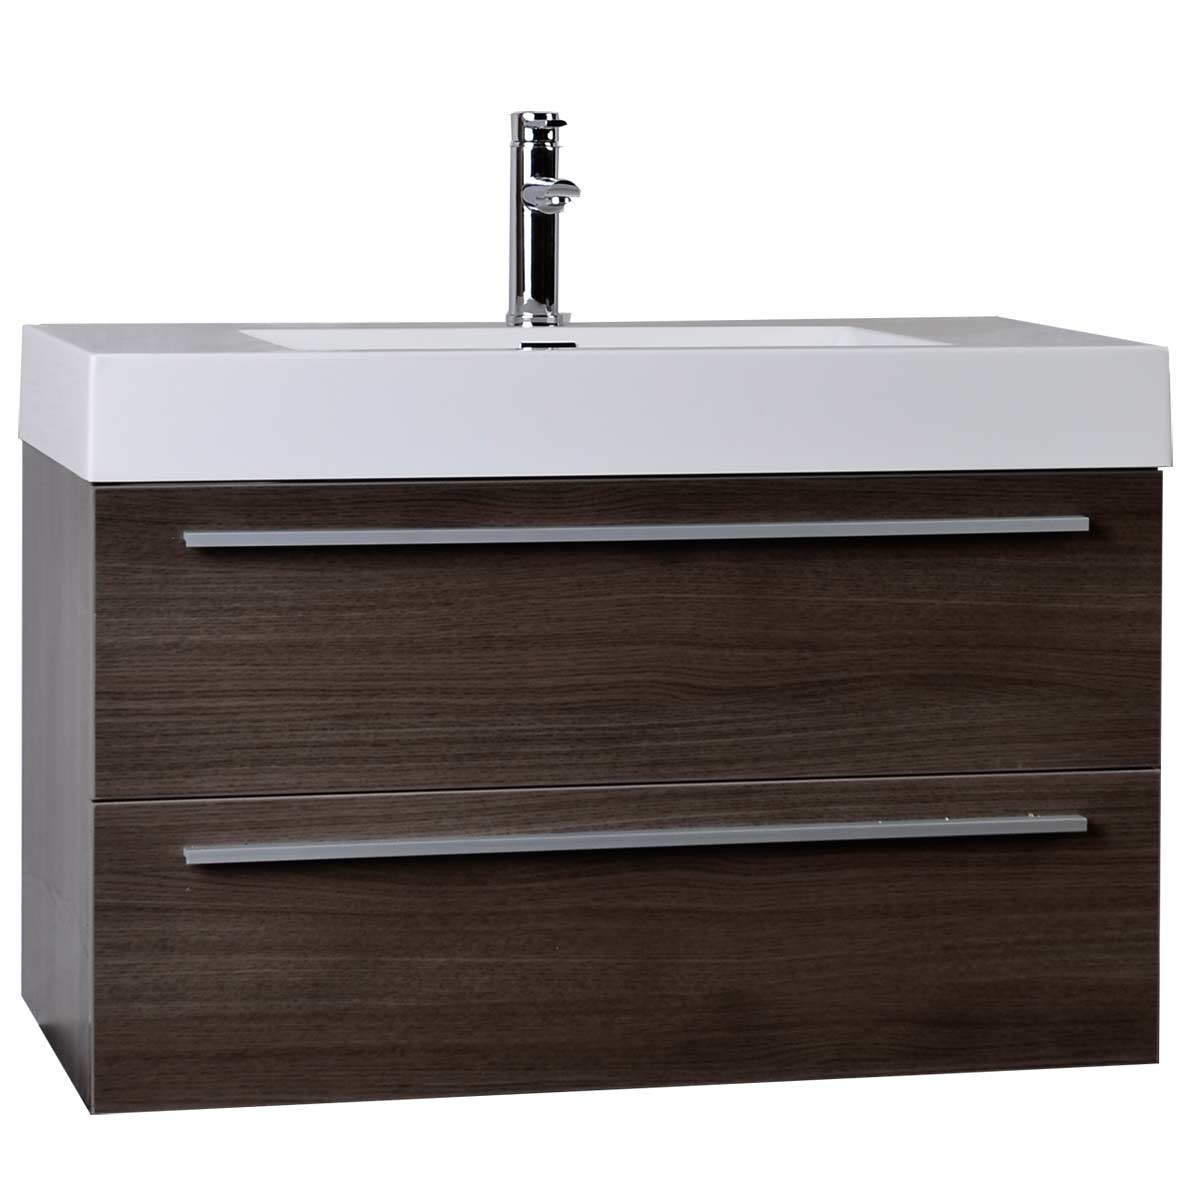 Modern Bathroom Vanity Grey Oak WallMount Free Shipping TN - Wall mount vanities for bathrooms